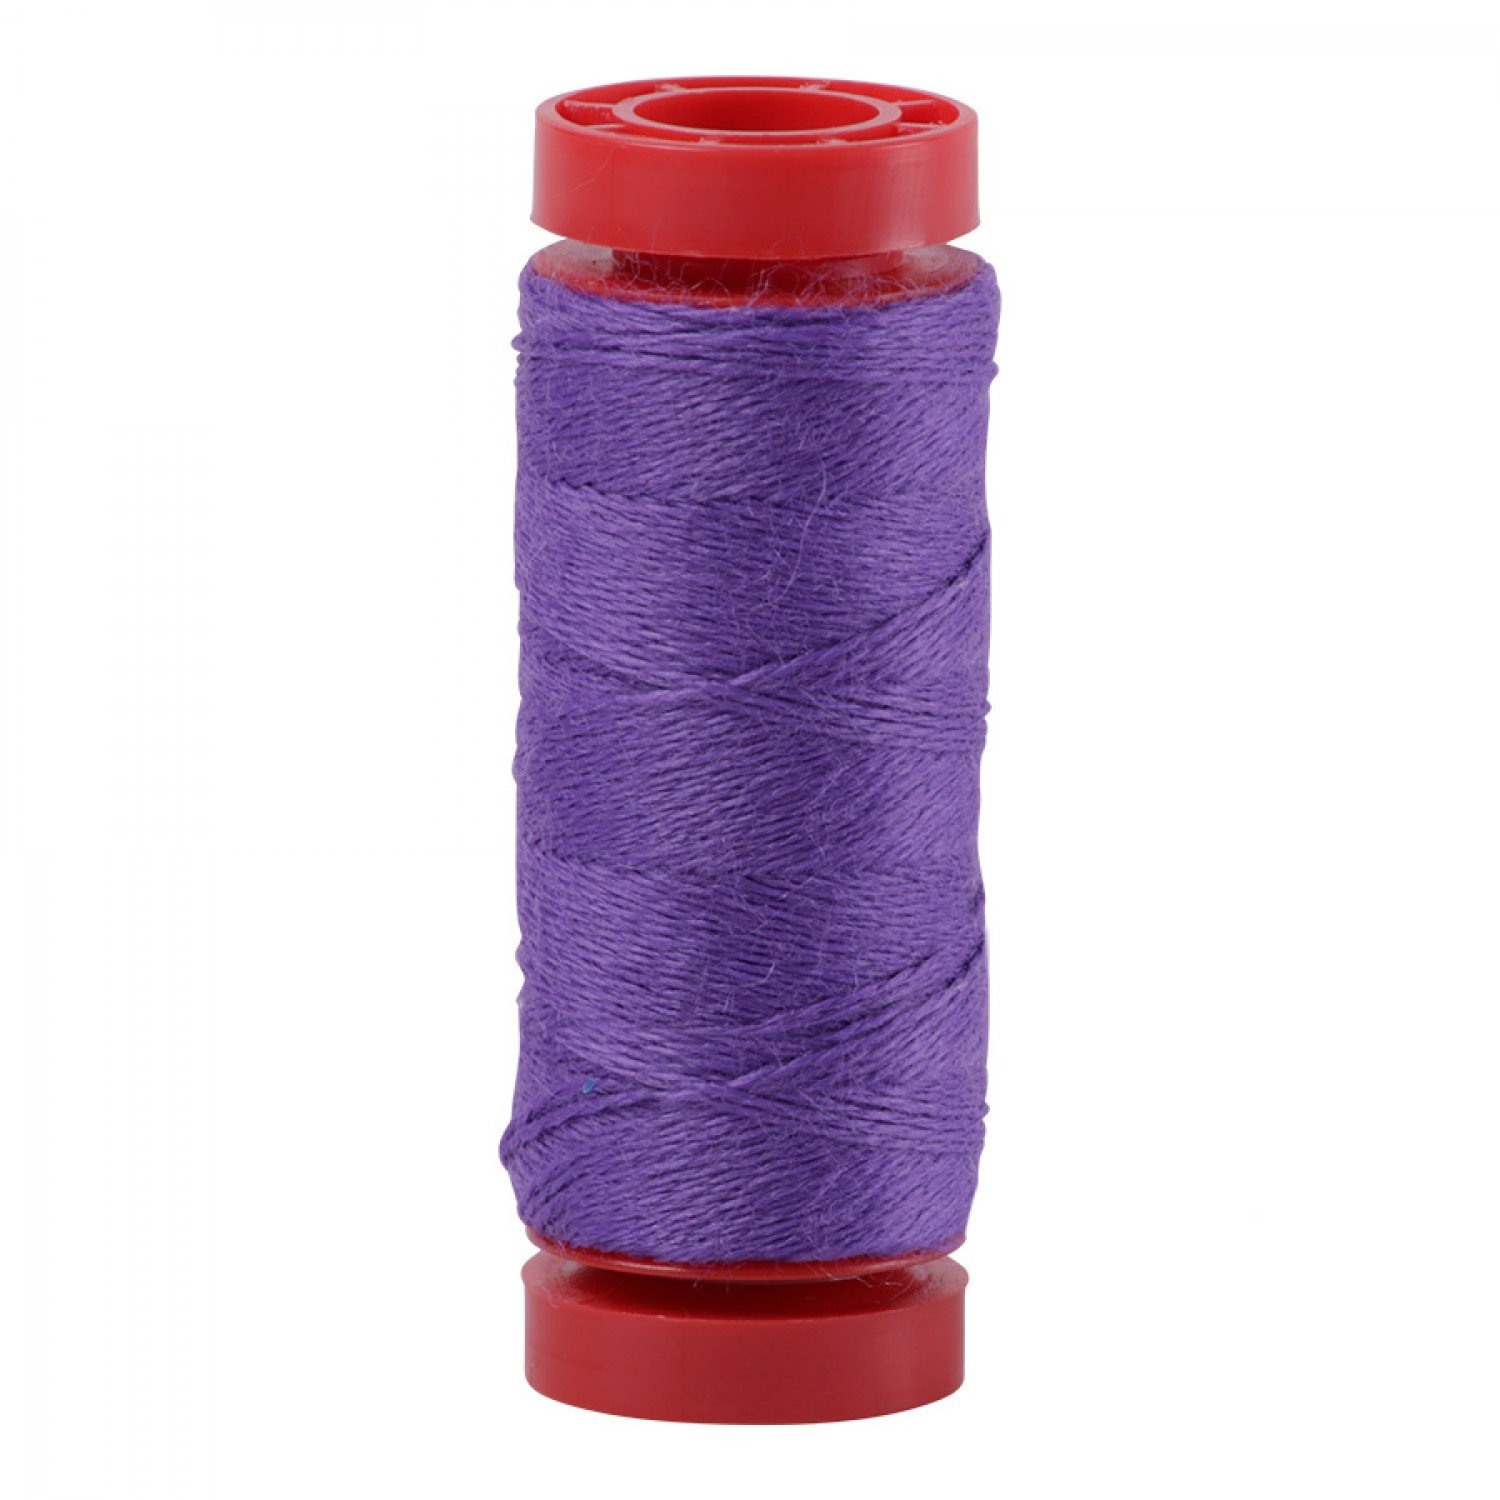 Aurifil 12wt Lana Wool Thread - 8520 Deep Violet